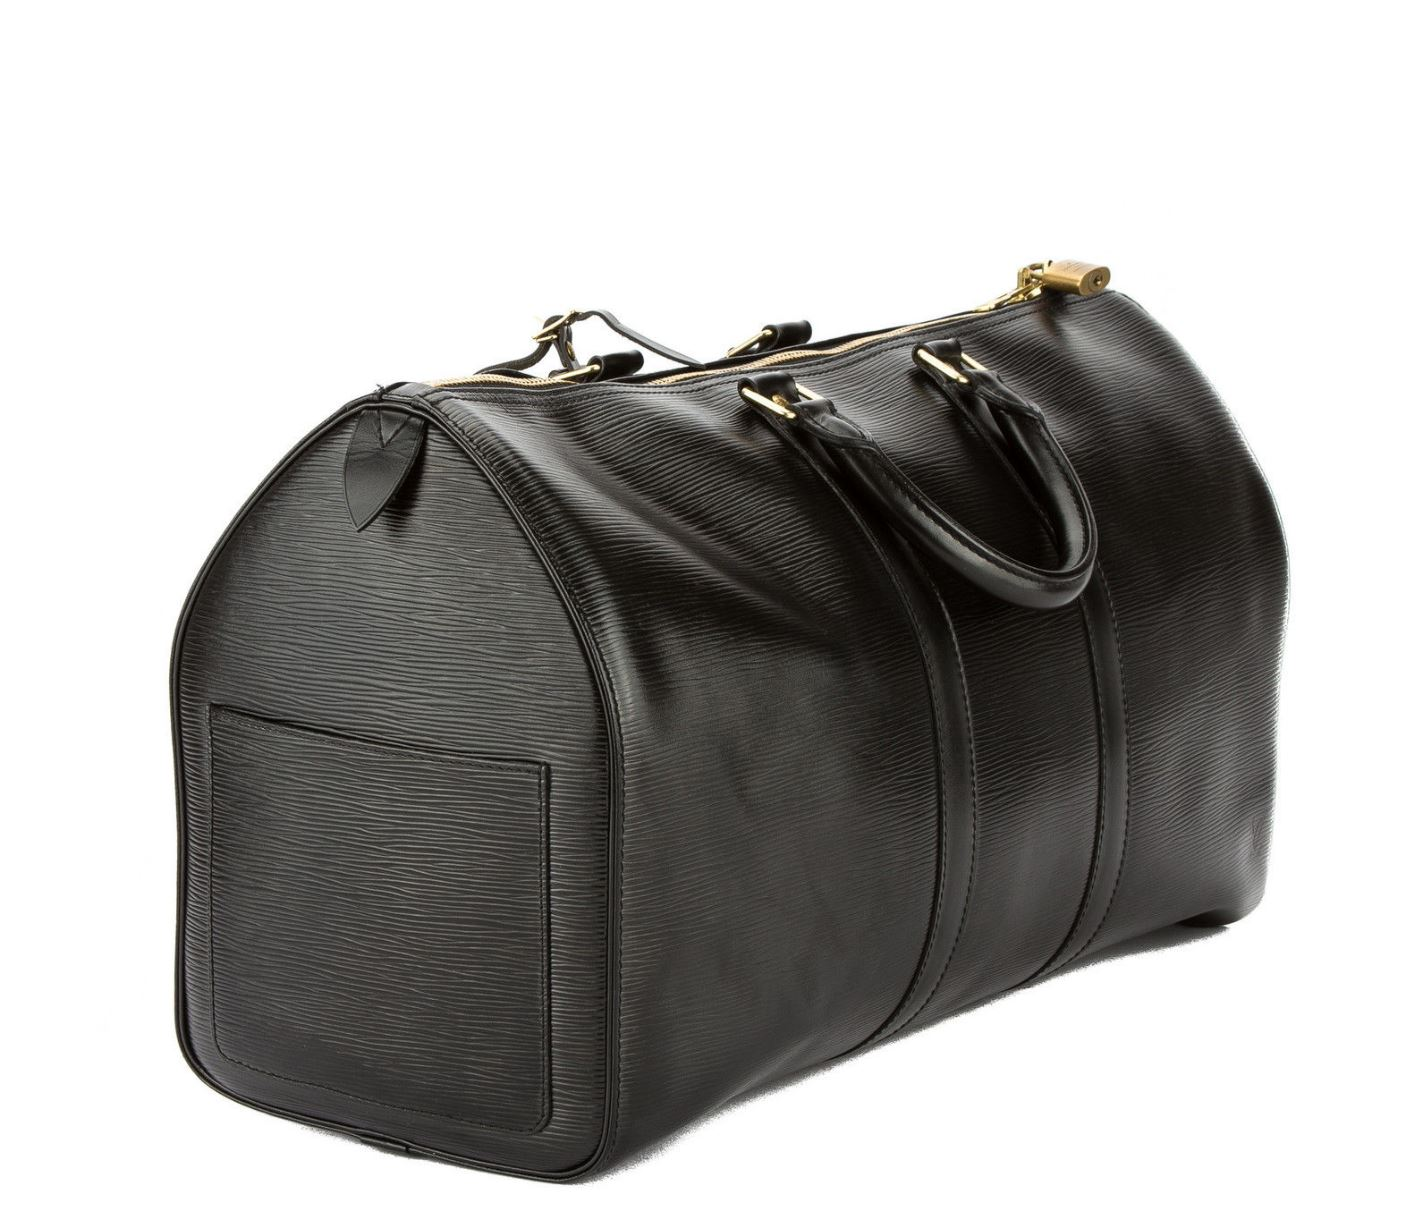 Louis Vuitton Authentic Louis Vuitton Keepall 45 in Epi Leather Black Noir  Travel Size TSA Cabin Carry-On Approved Overnight Weekend Travel Luggage  Boston ... 2e0b819eddb95